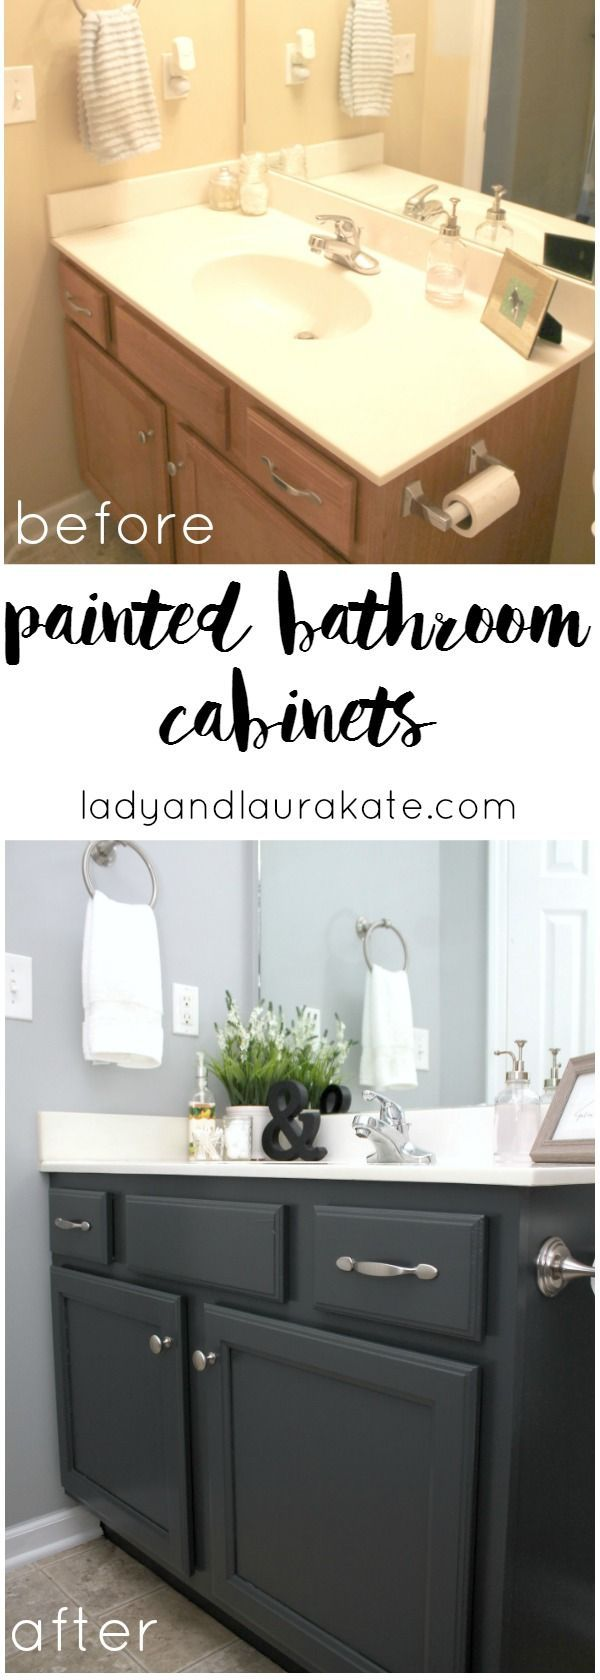 How To Repaint Bathroom Cabinets White easy way to paint your bathroom cabinets | painted bathroom